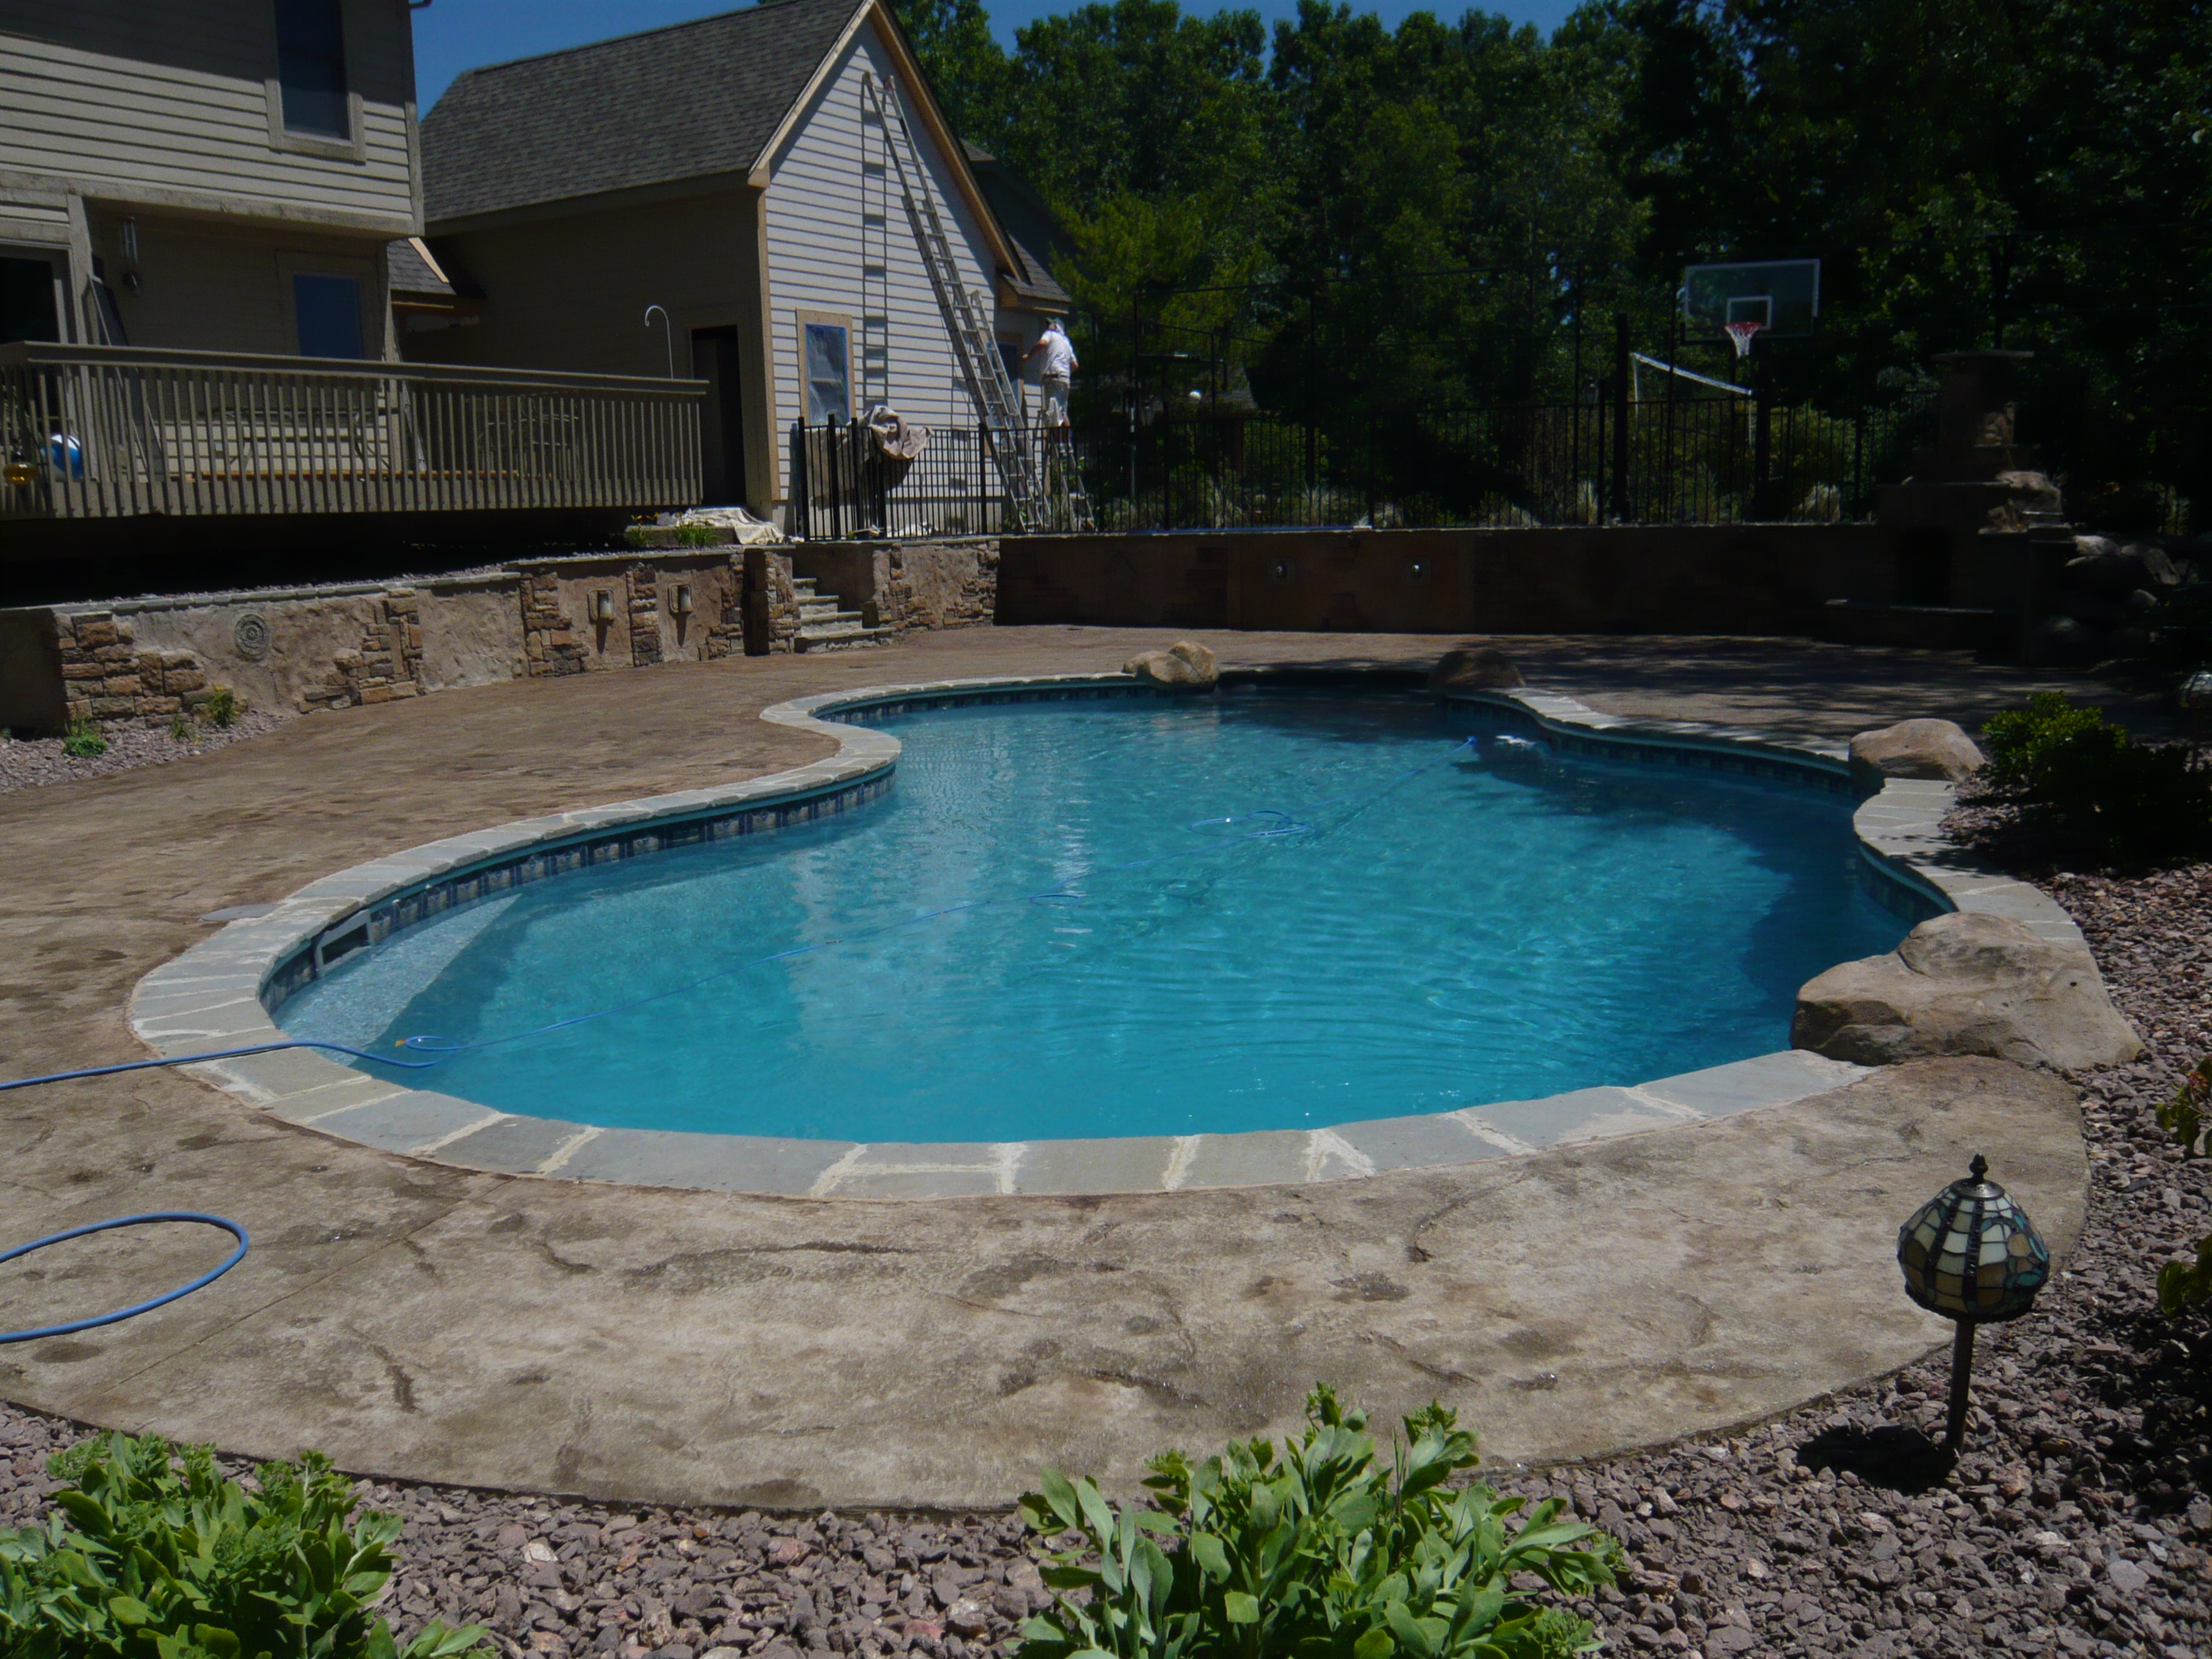 Legendary Escapes Debest July 2010 Vinyl Liner Pool And Retaining Wall Firepit By Legendary